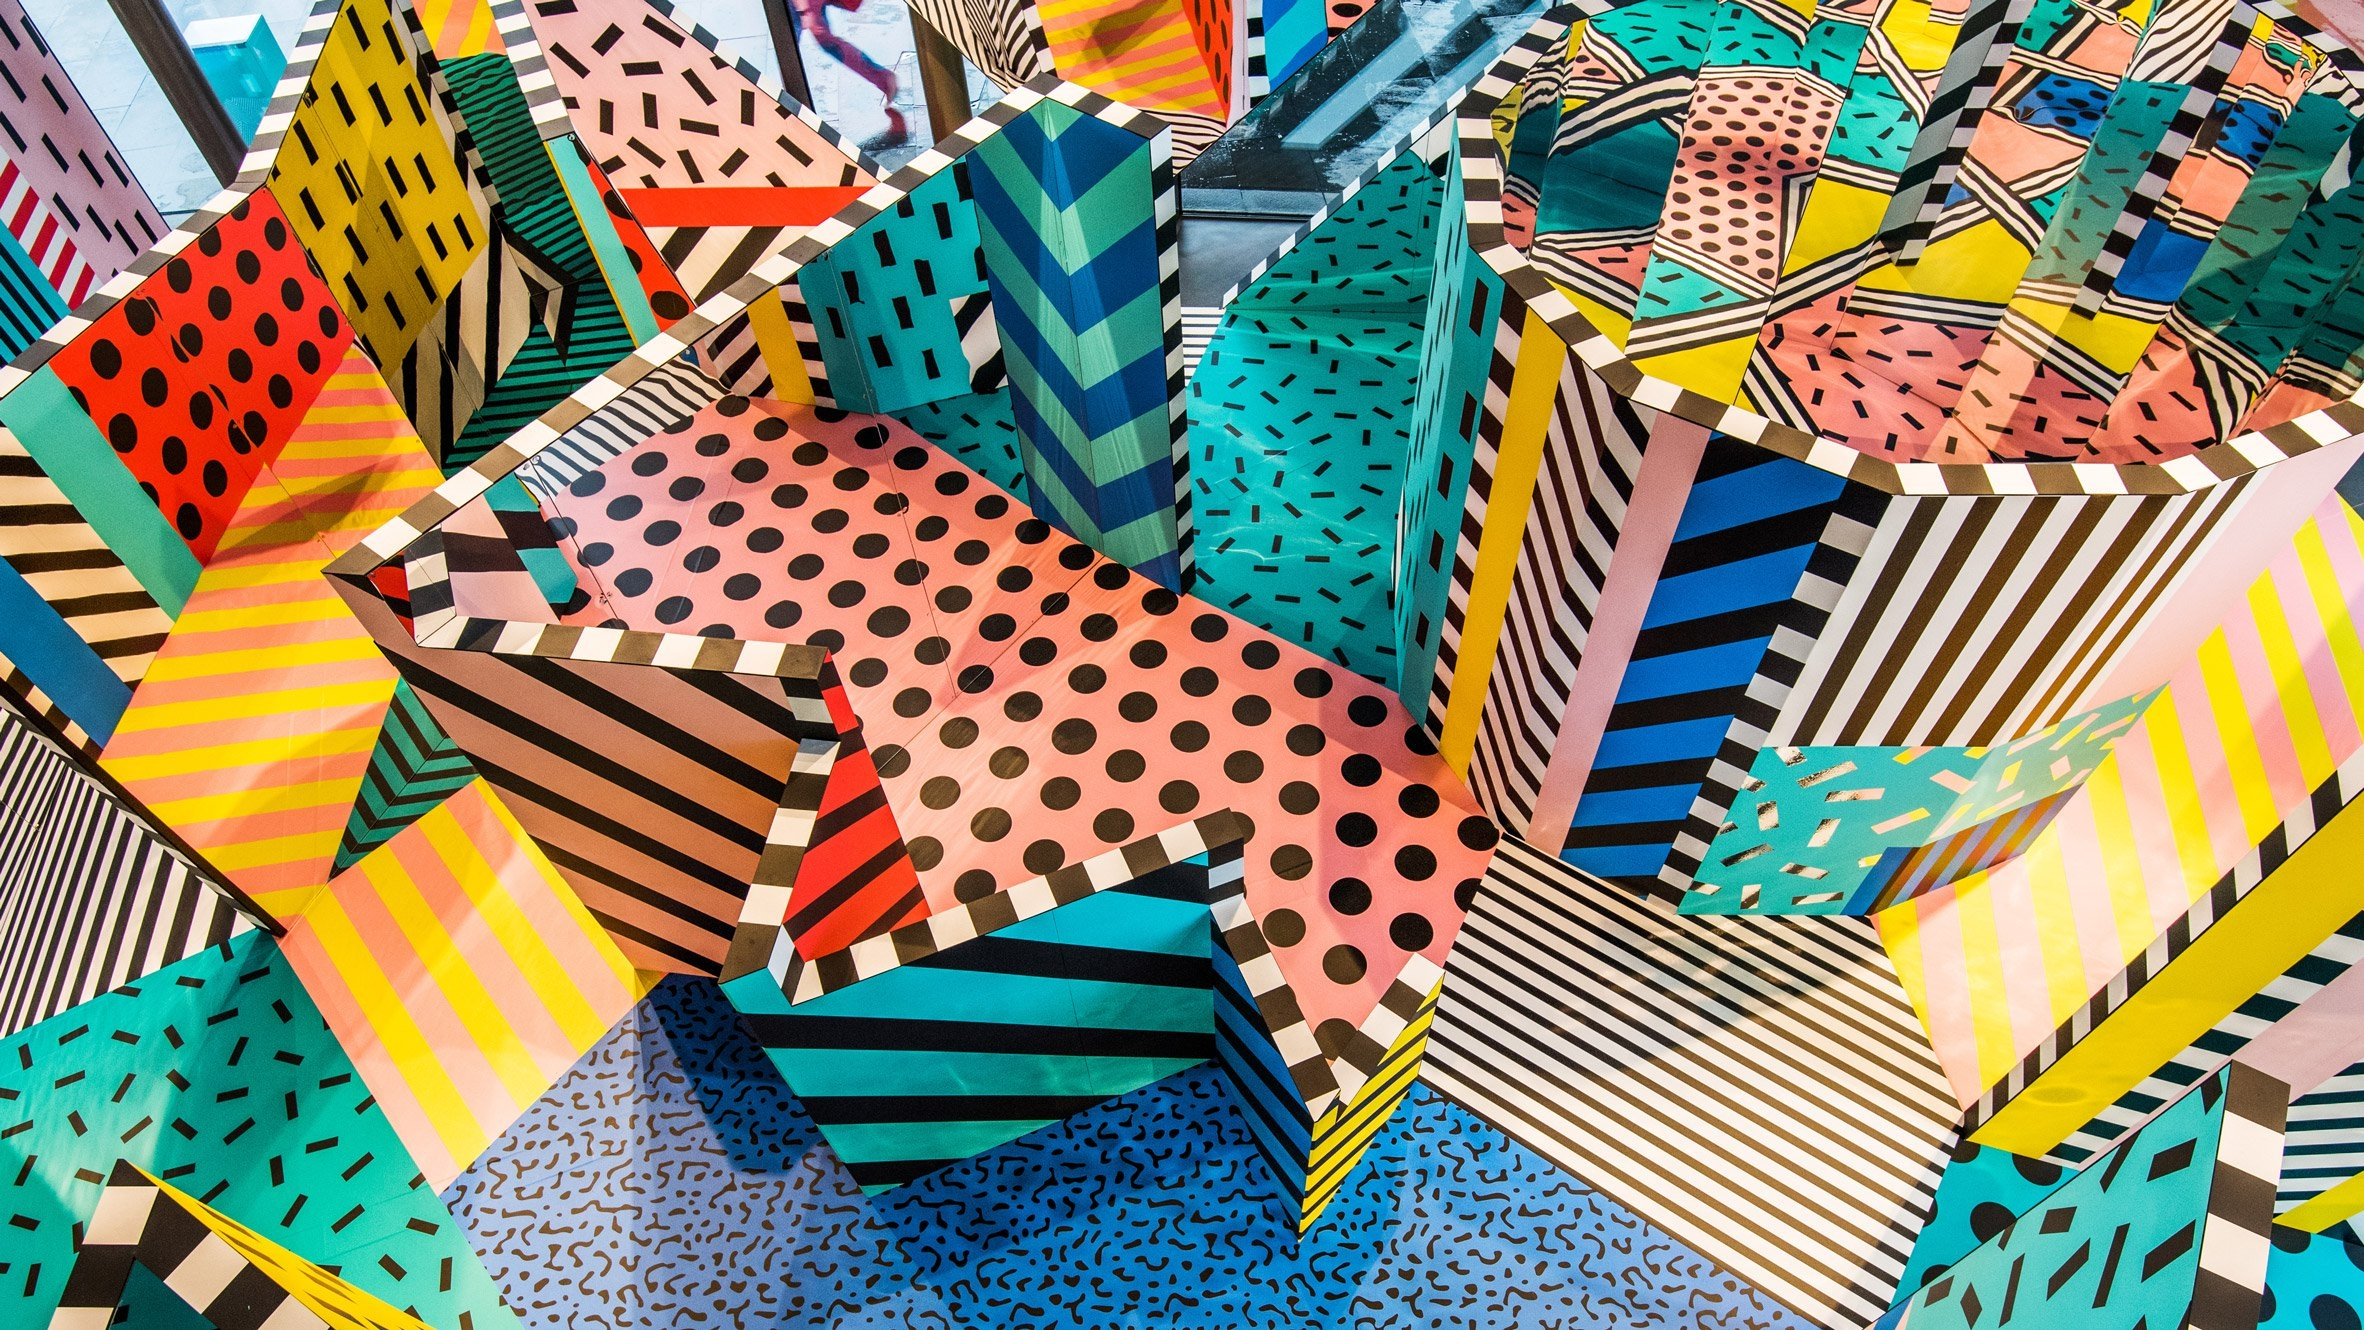 London To Brighton Cycle 2017 >> Camille Walala's colourful exhibition at the Now Gallery - That's Not My Age